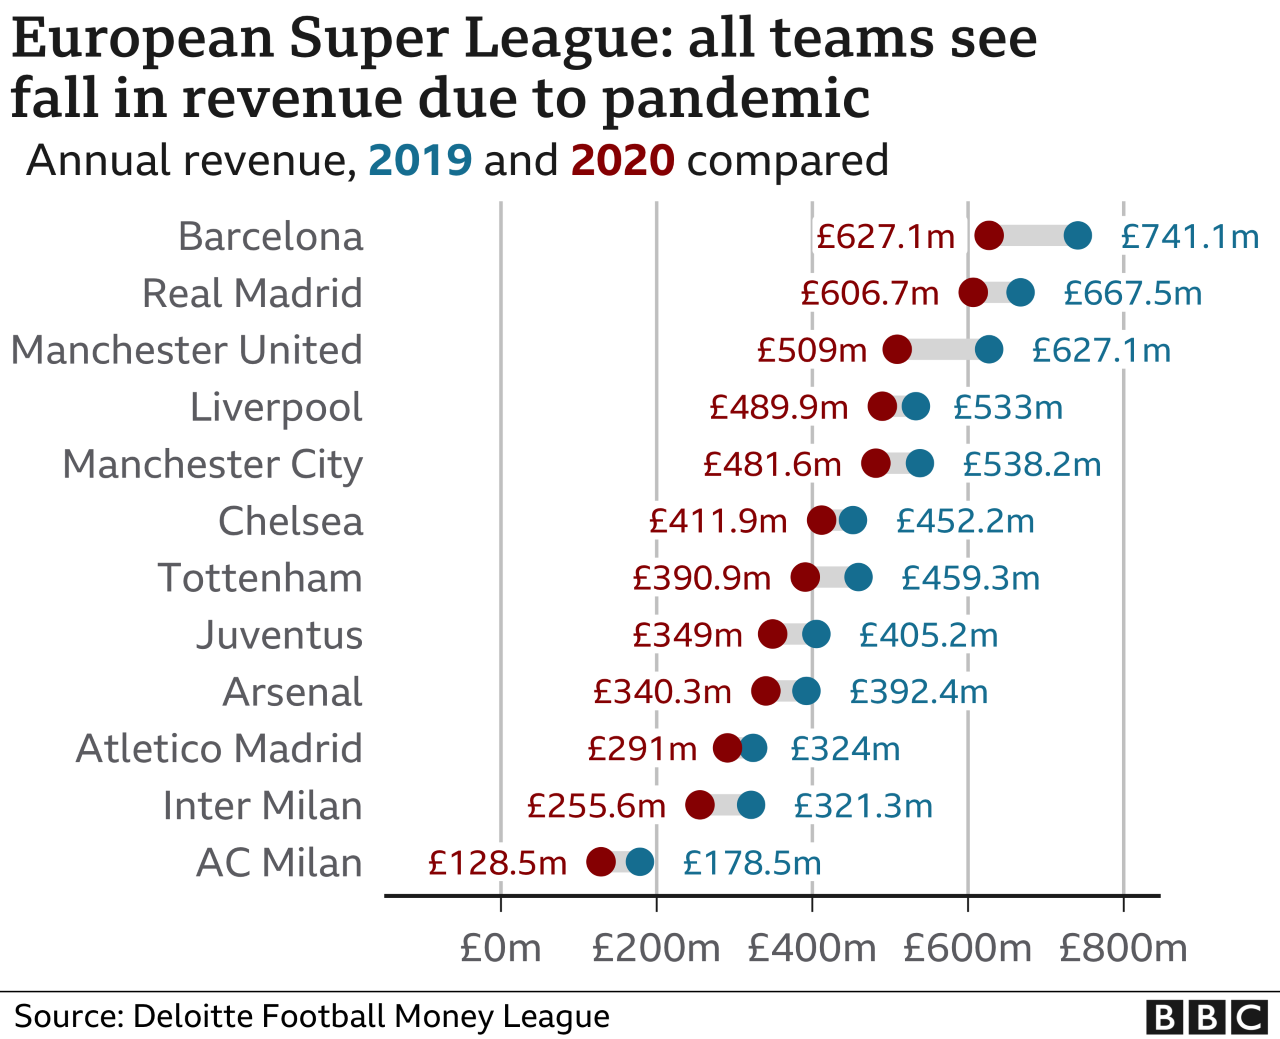 Chart showing football clubs' fall in revenue